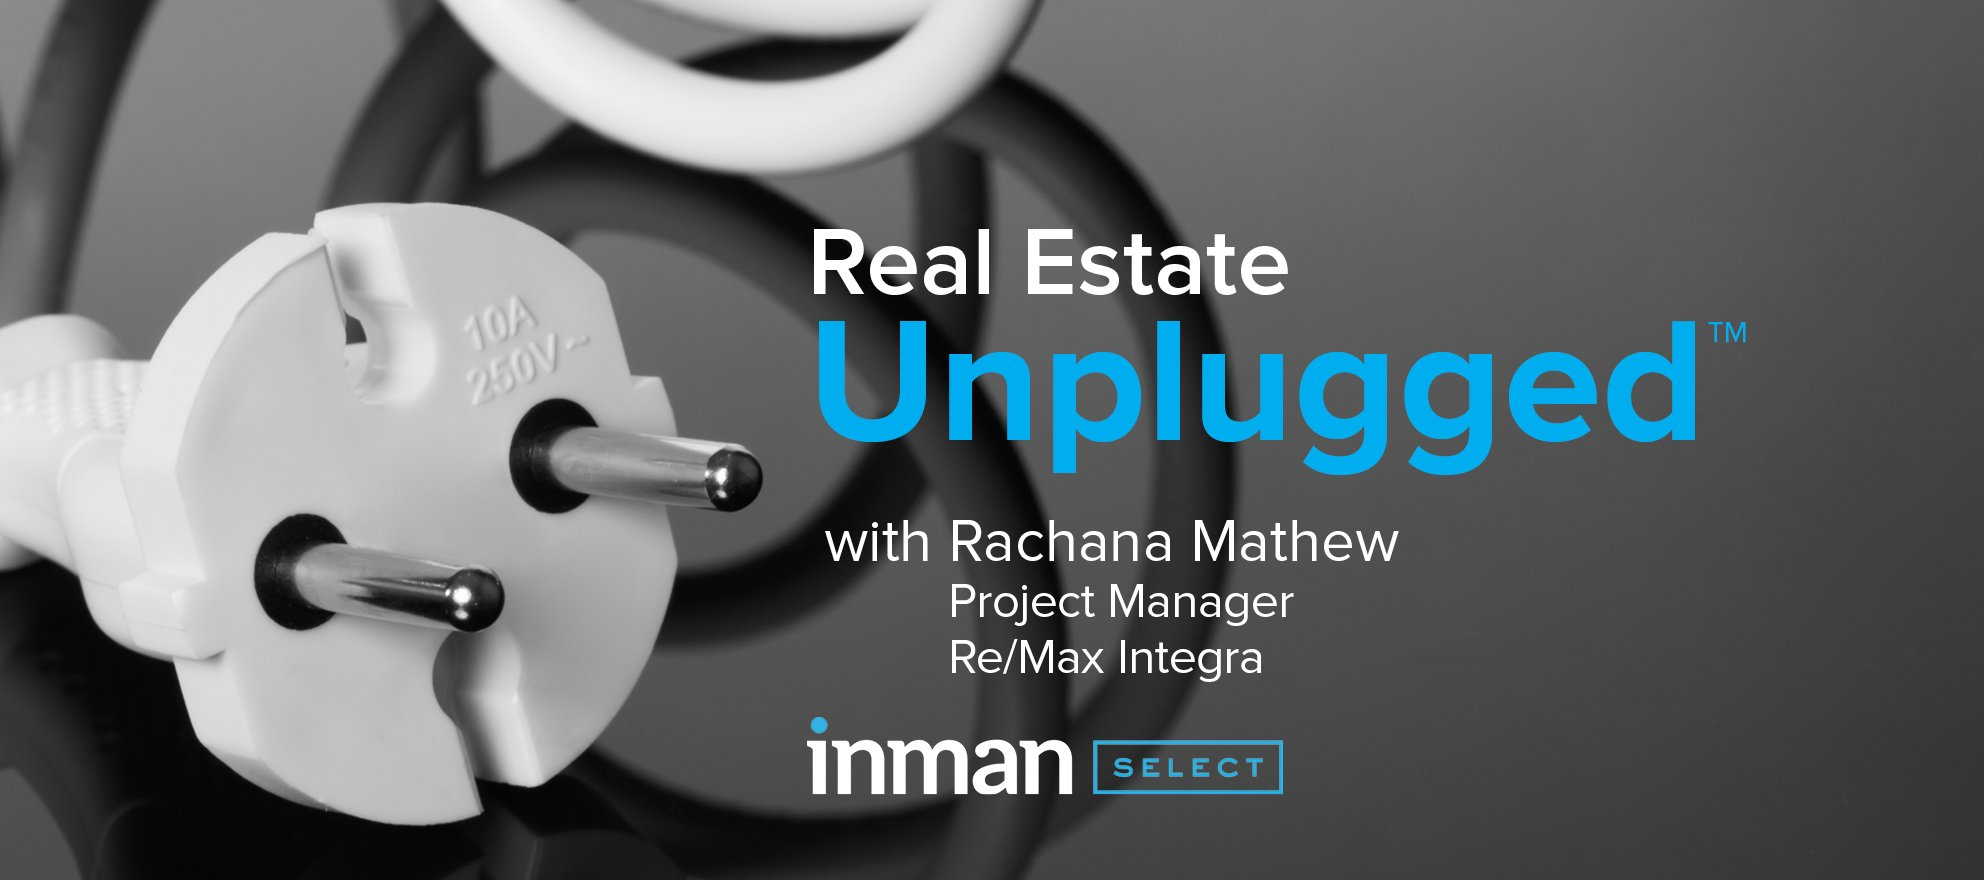 Rachana Mathew on her real estate role model and the benefits of a robust digital presence